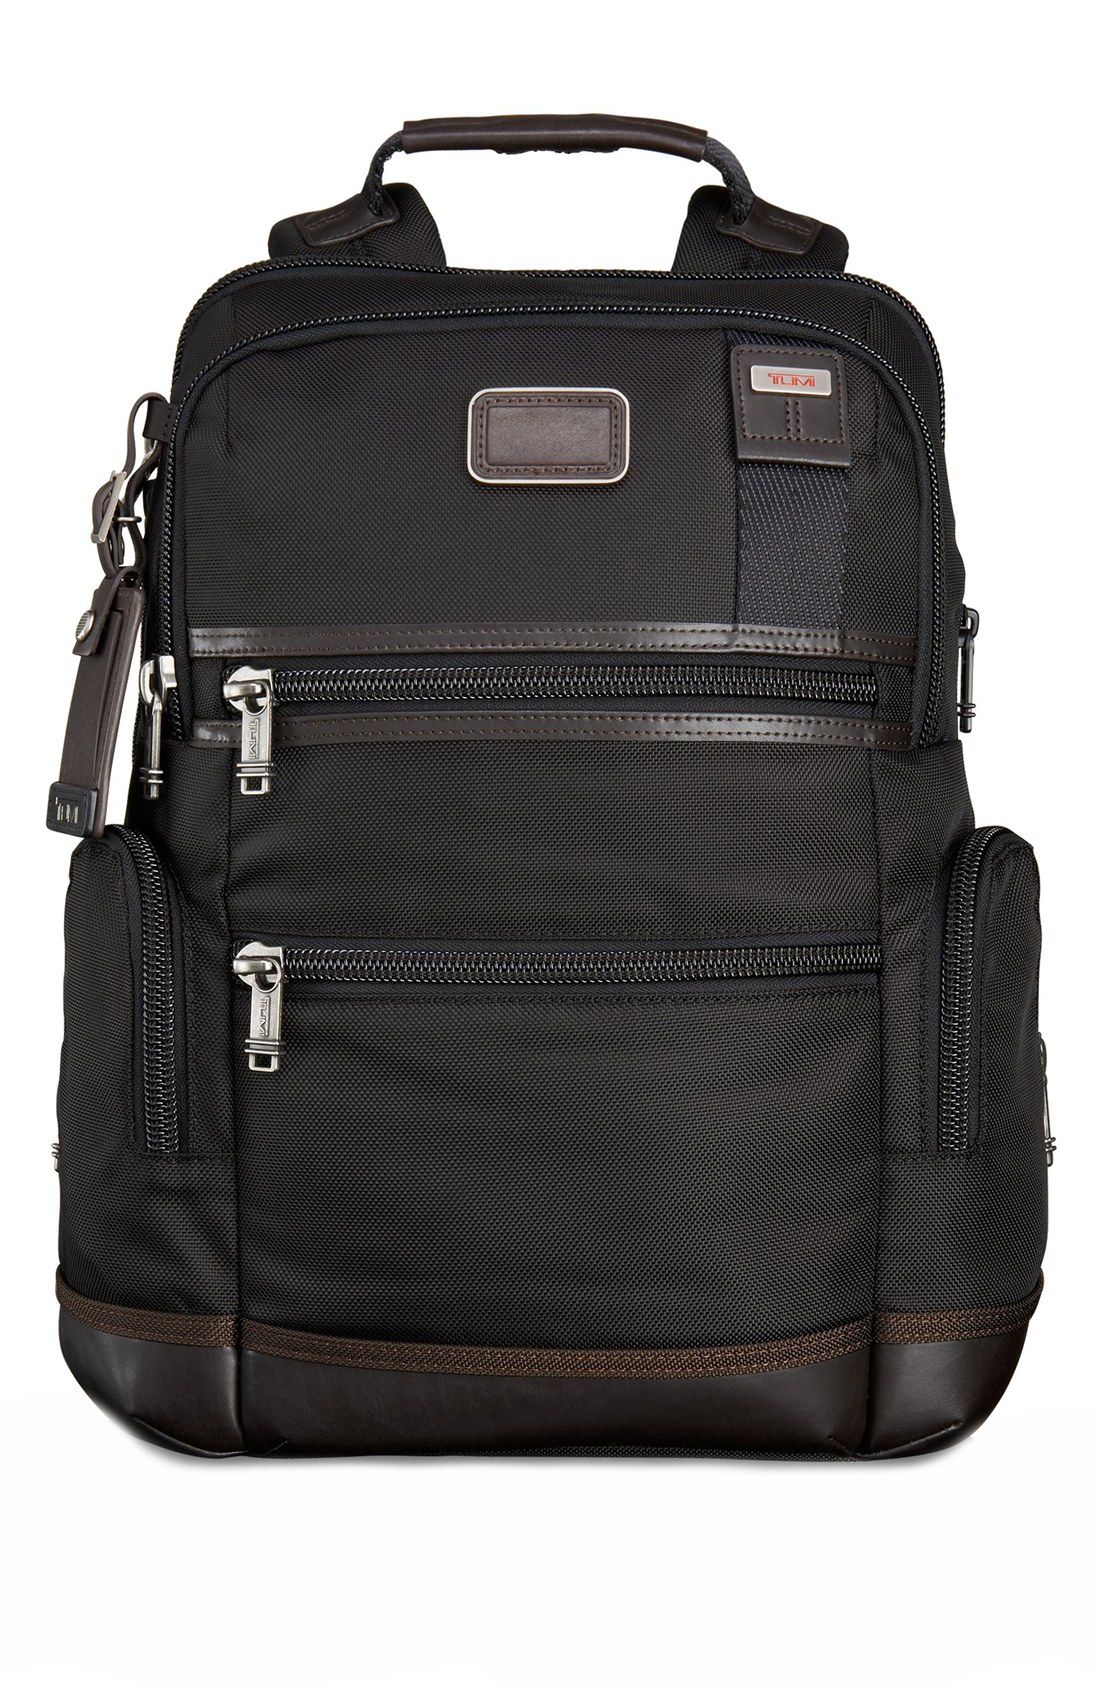 Alpha Bravo Tumi Backpack | Tumi Alpha Bravo Collection | Tumi Alpha Bravo